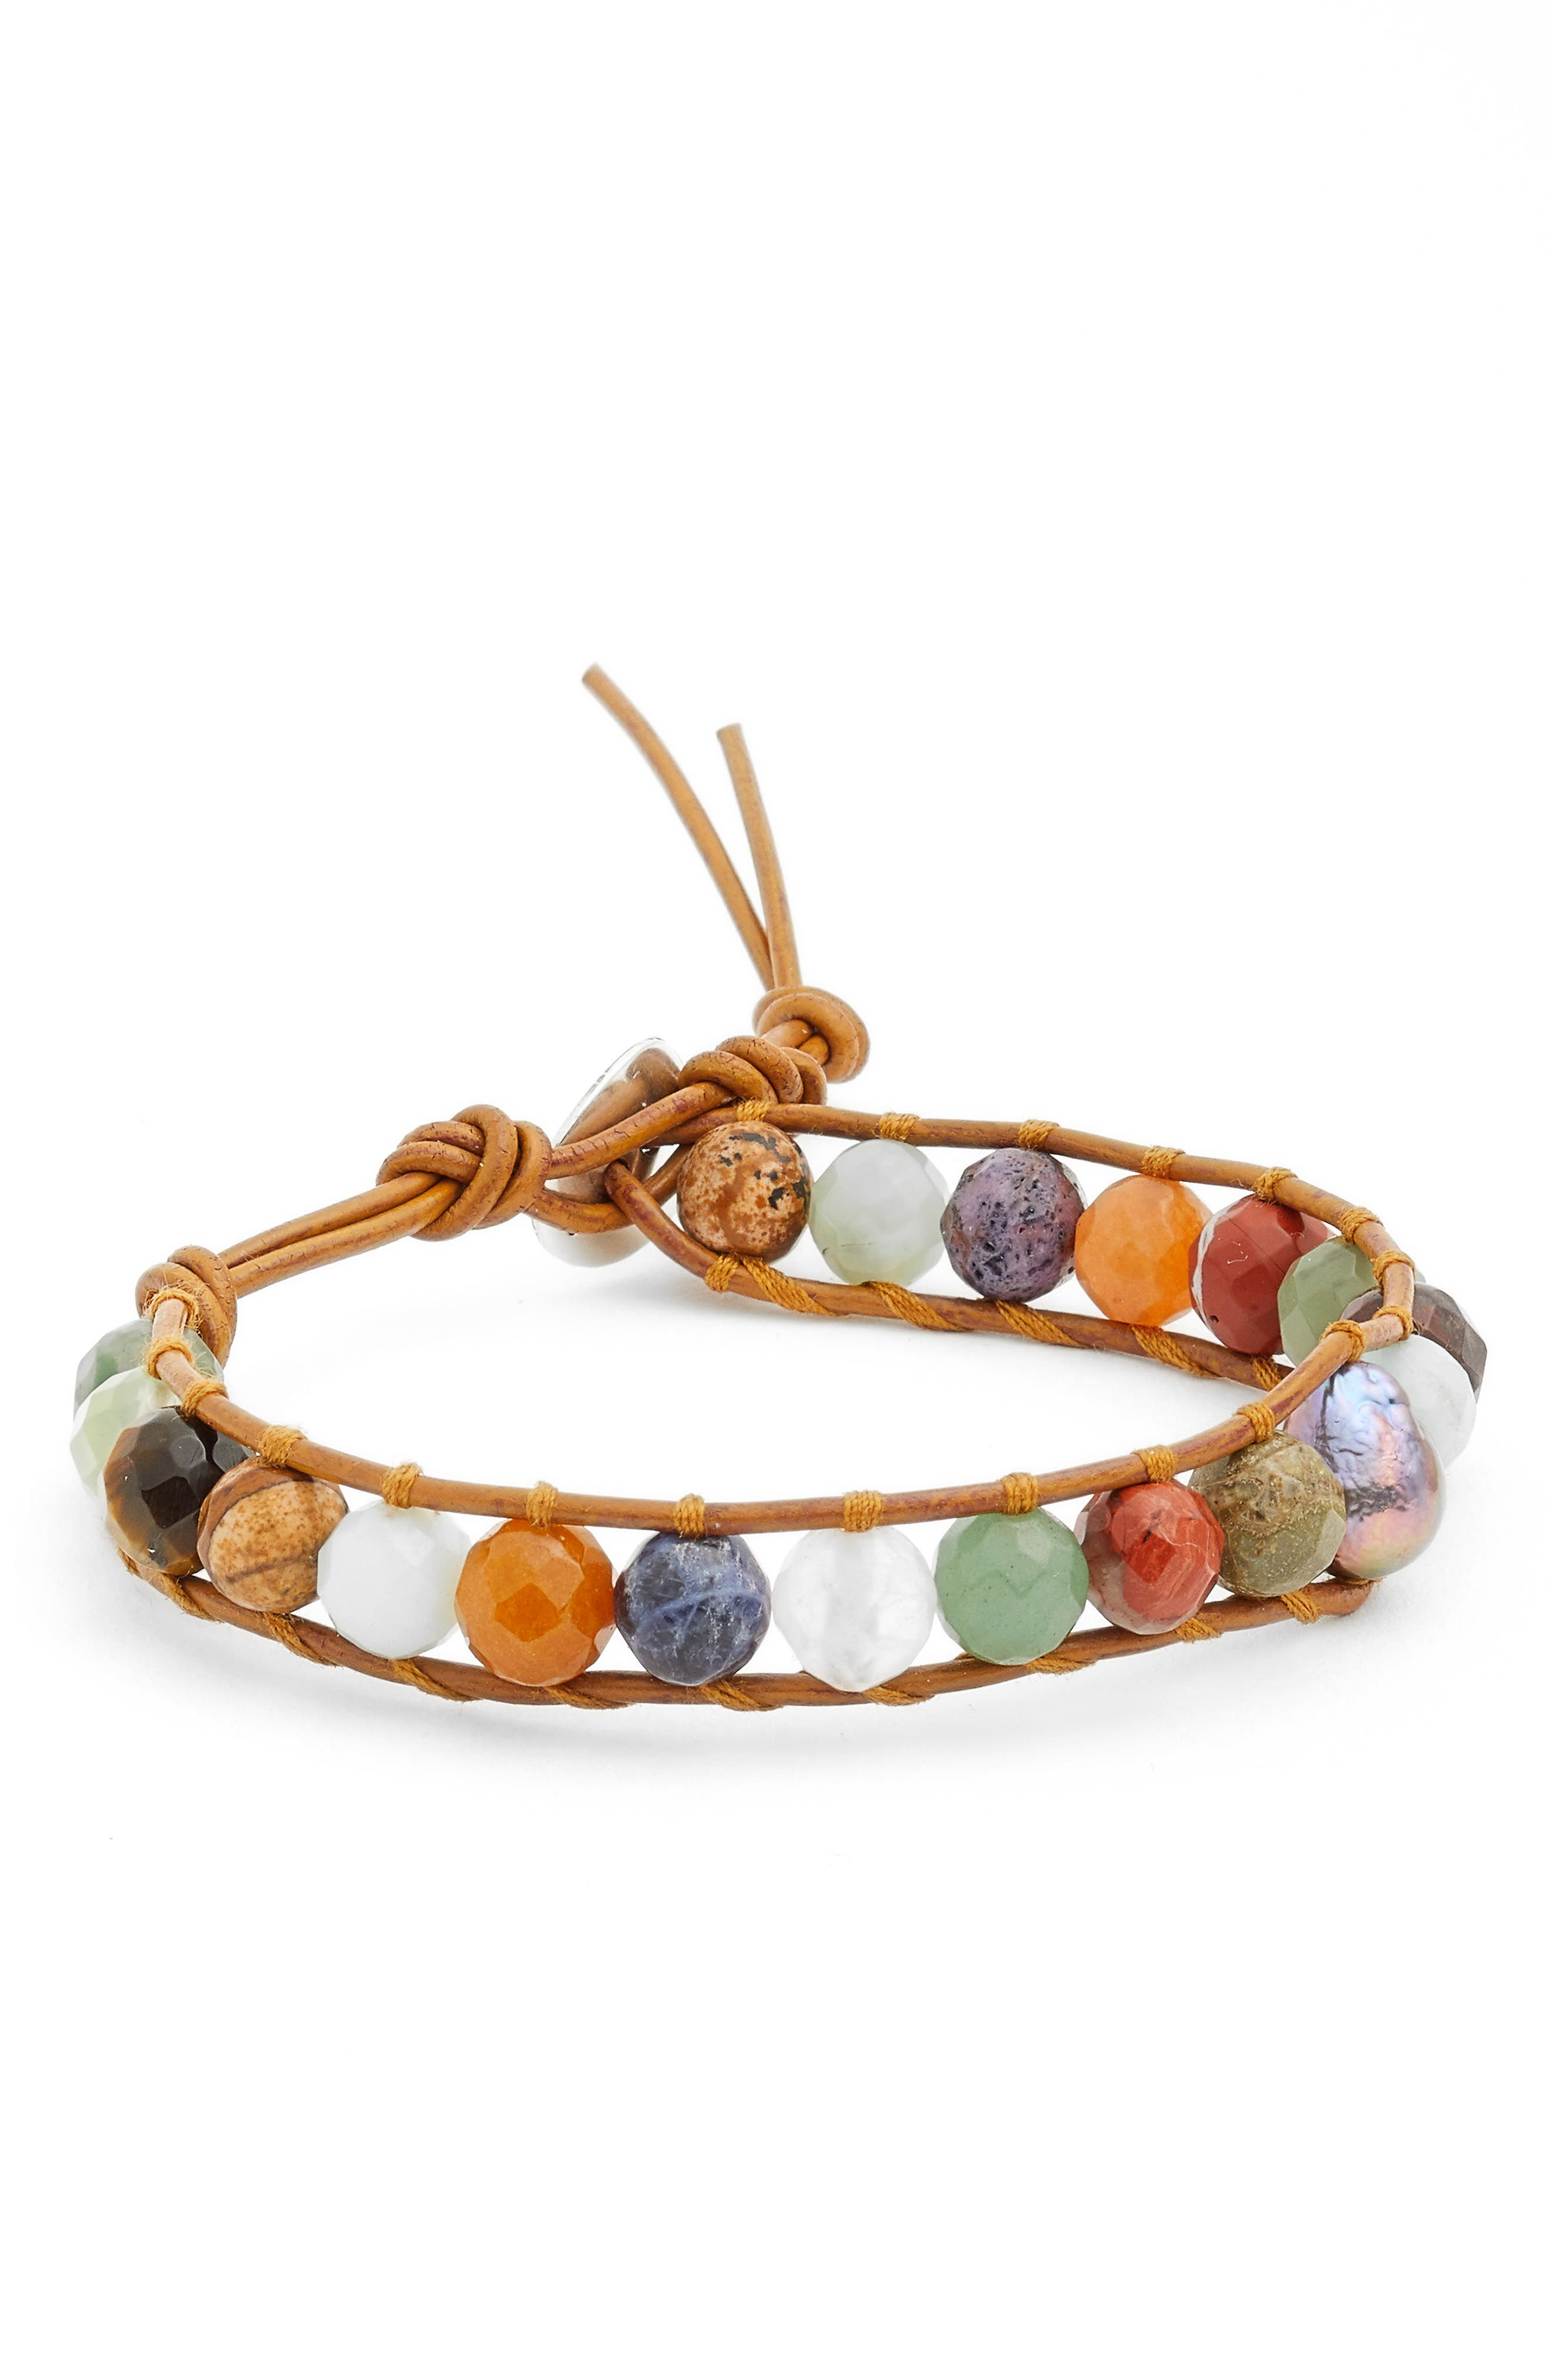 Stone & Pearl Leather Bracelet,                             Main thumbnail 1, color,                             BROWN MULTI